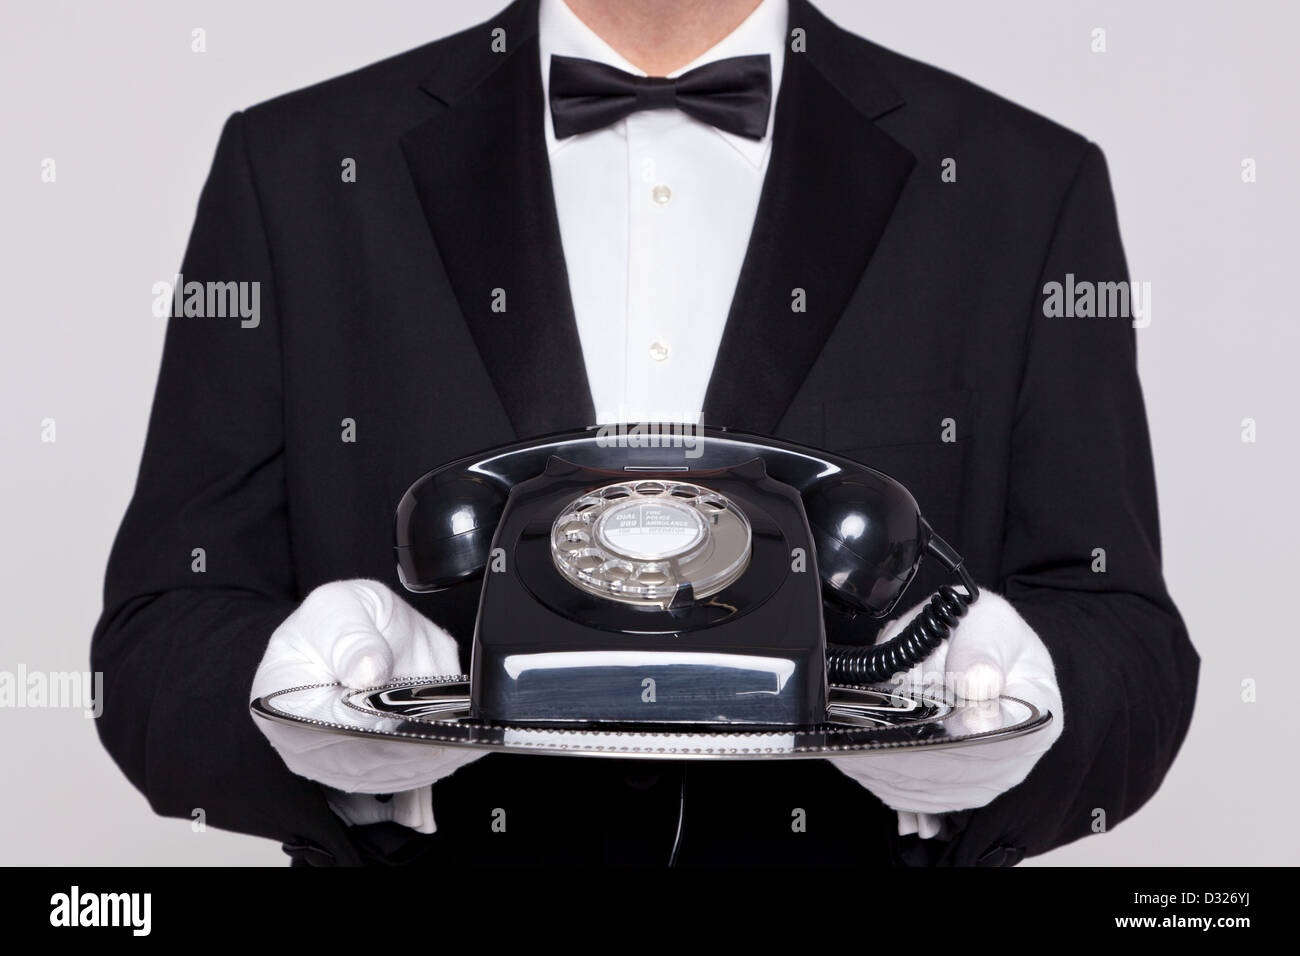 Butler holding a silver tray with an old retro black telephone on it. - Stock Image